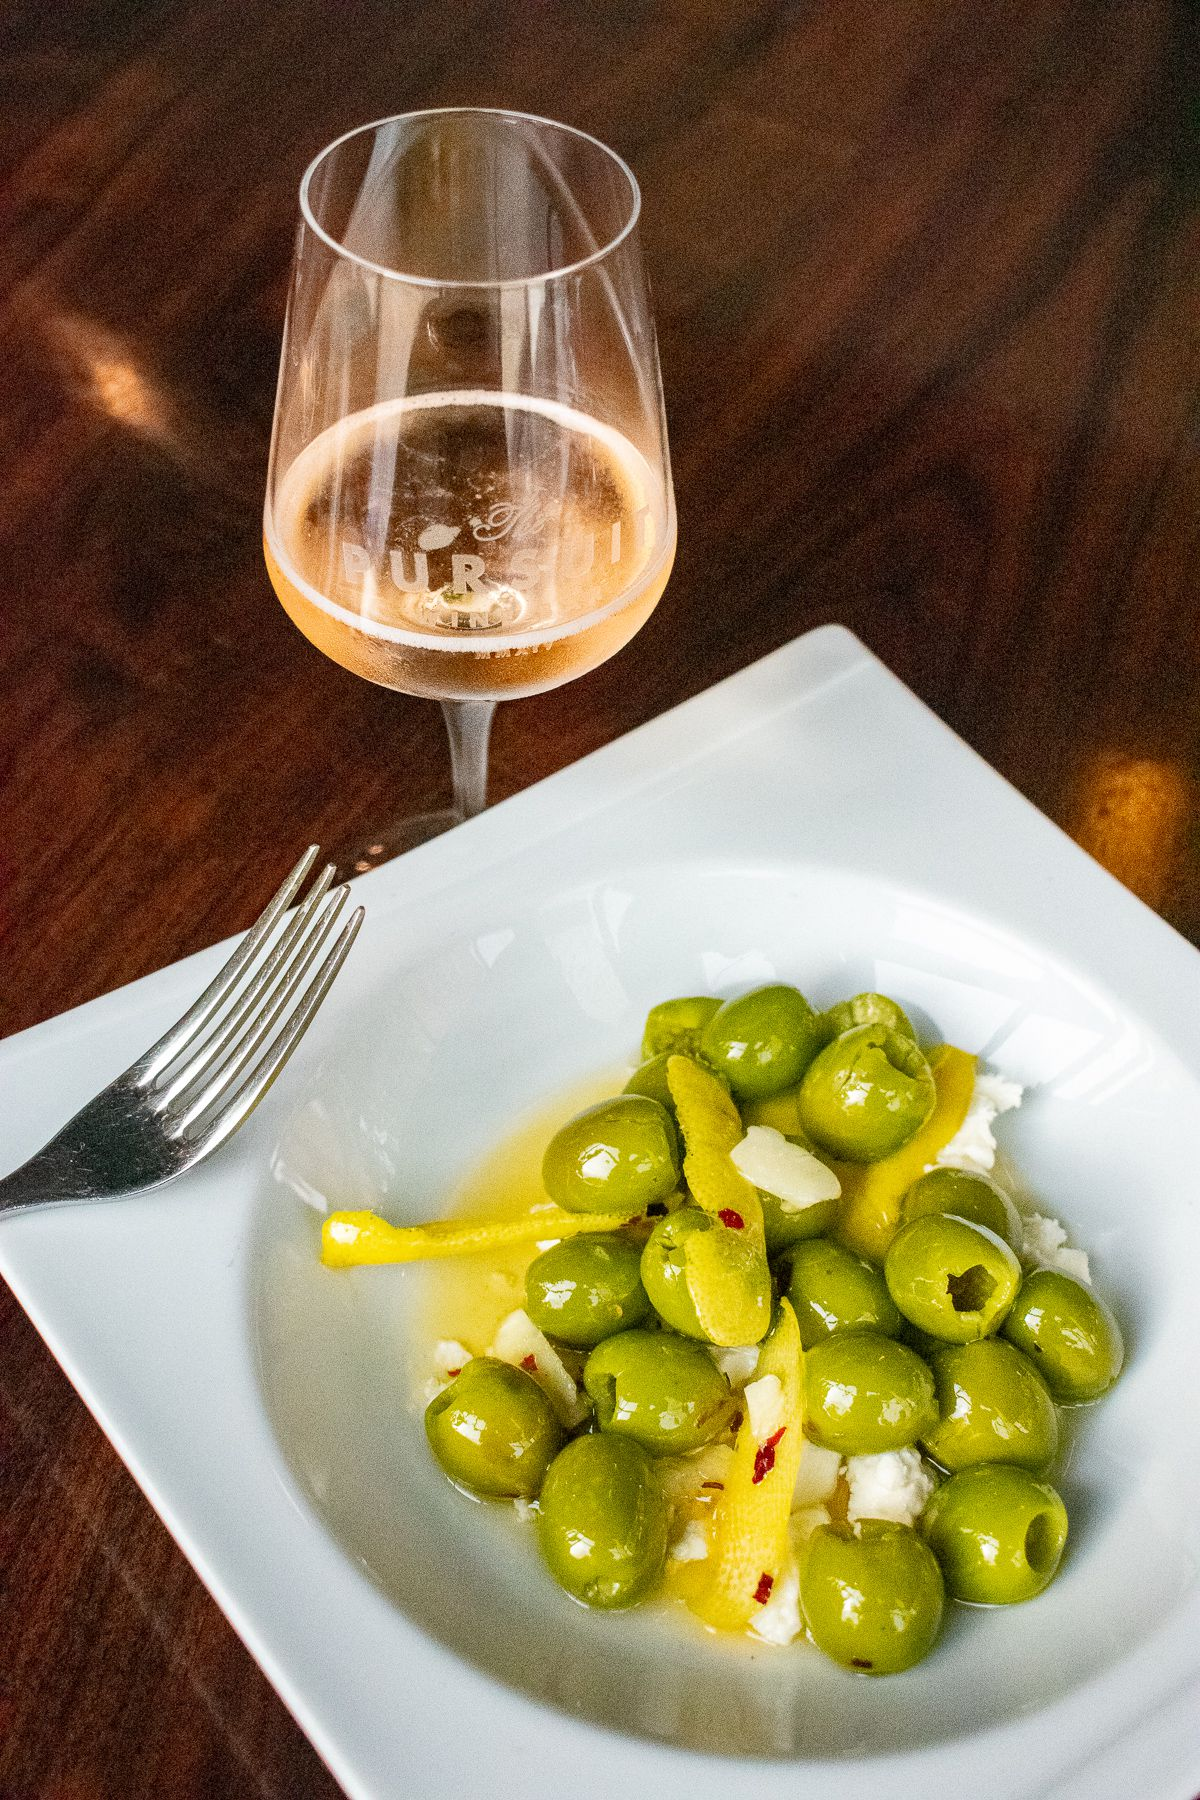 Olives and wine at Pursuit